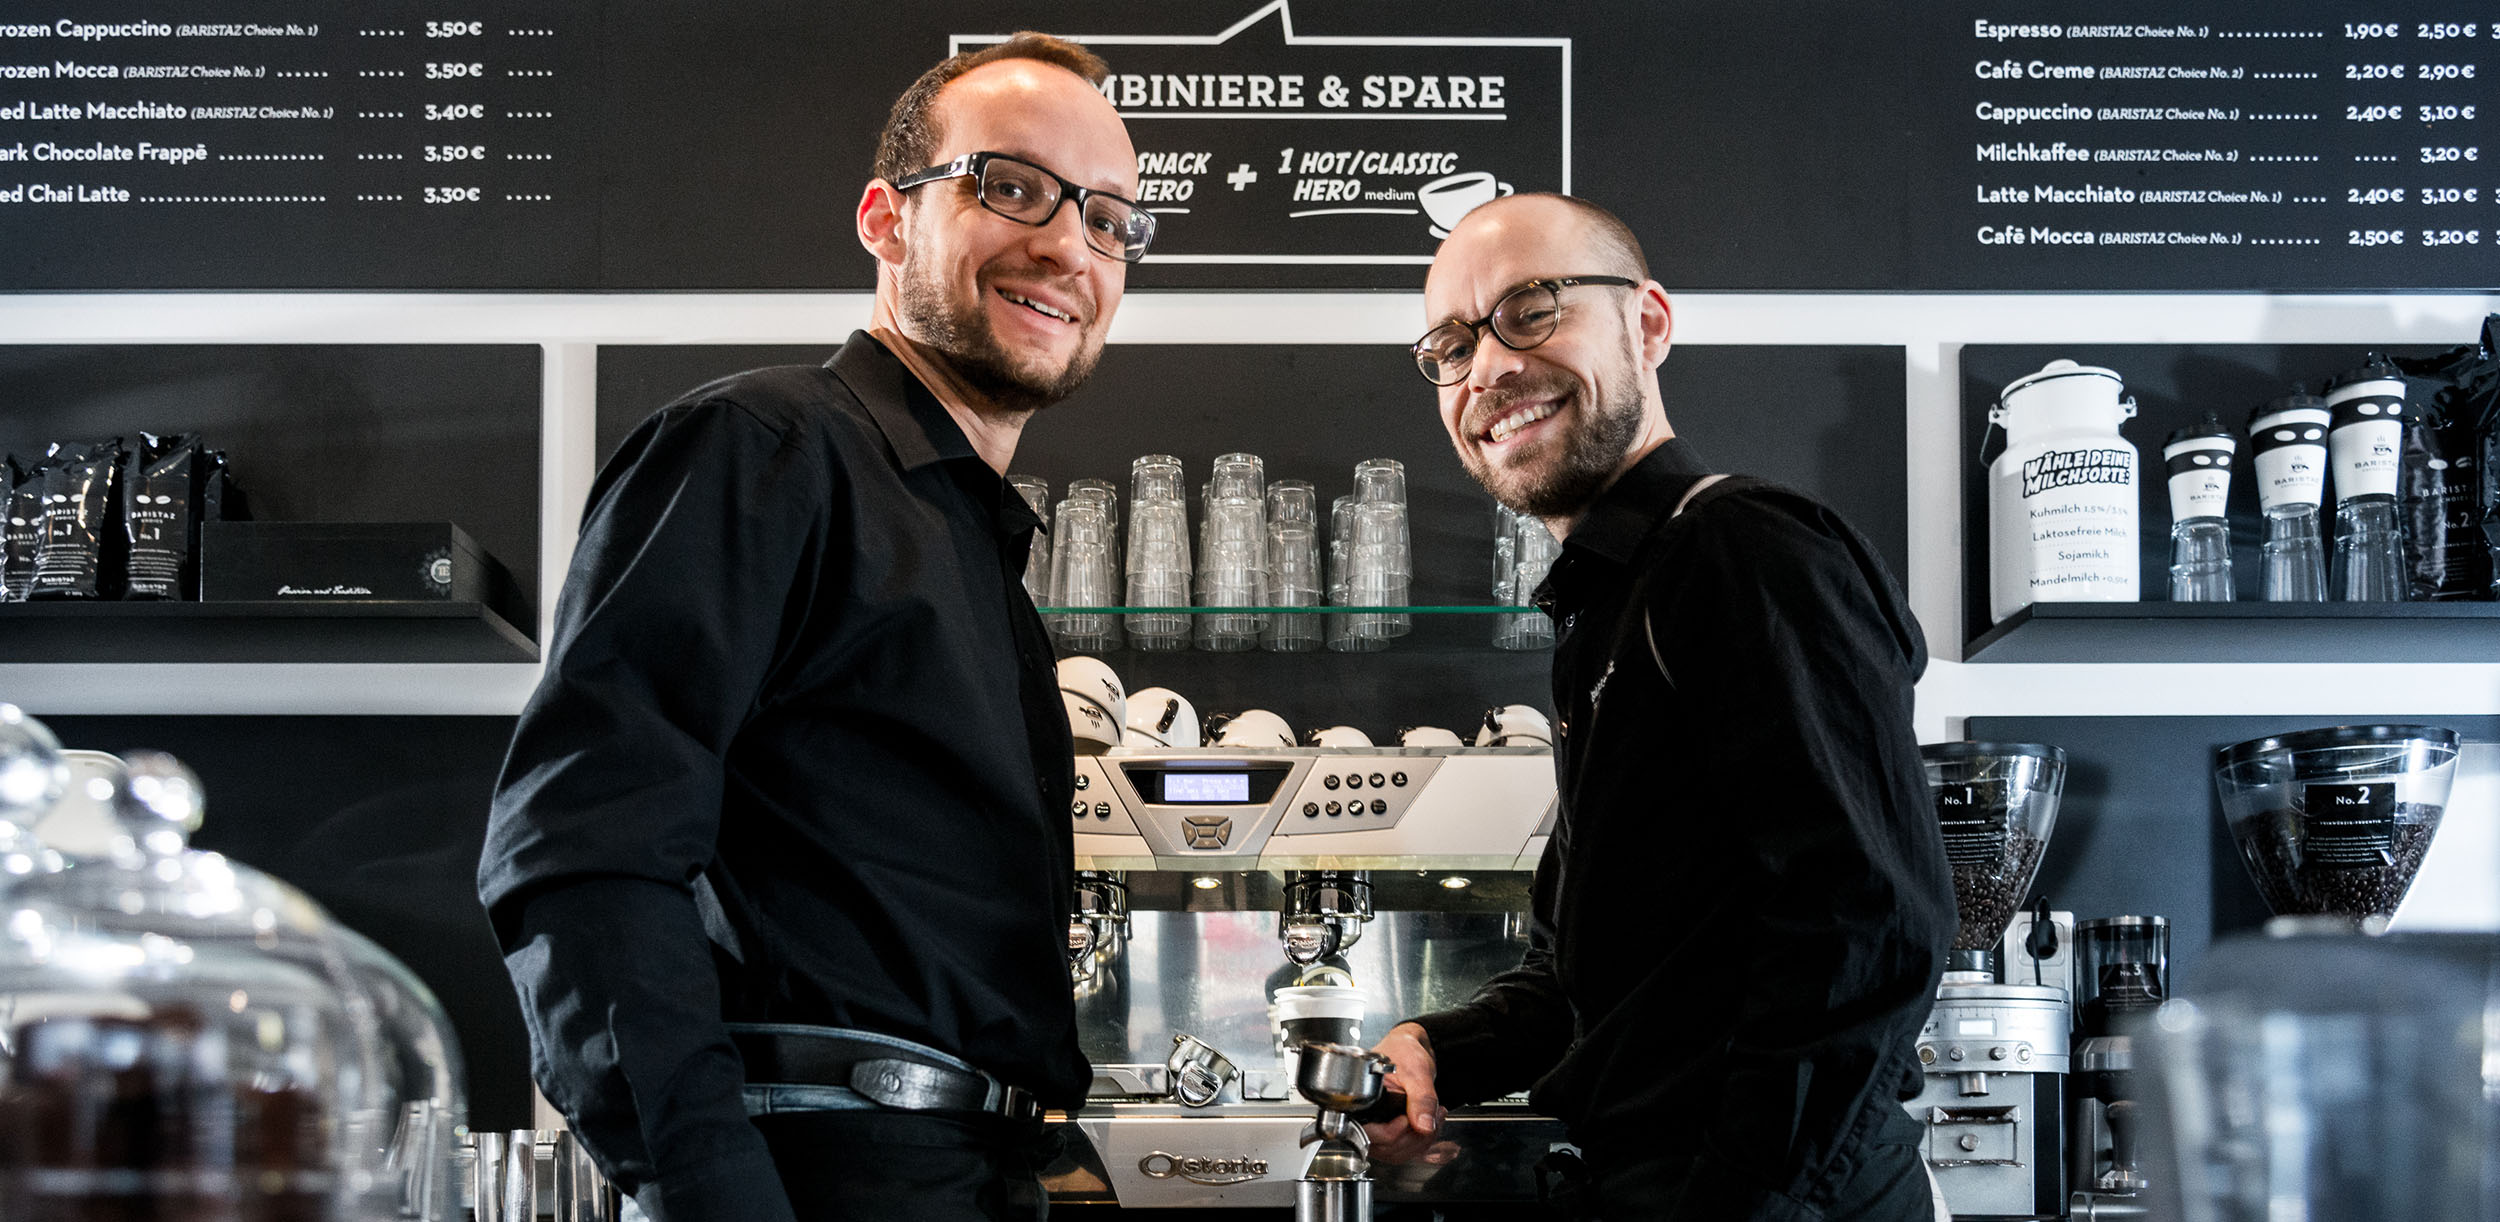 lehnstein-baristaz-website-coffee-heroes-05